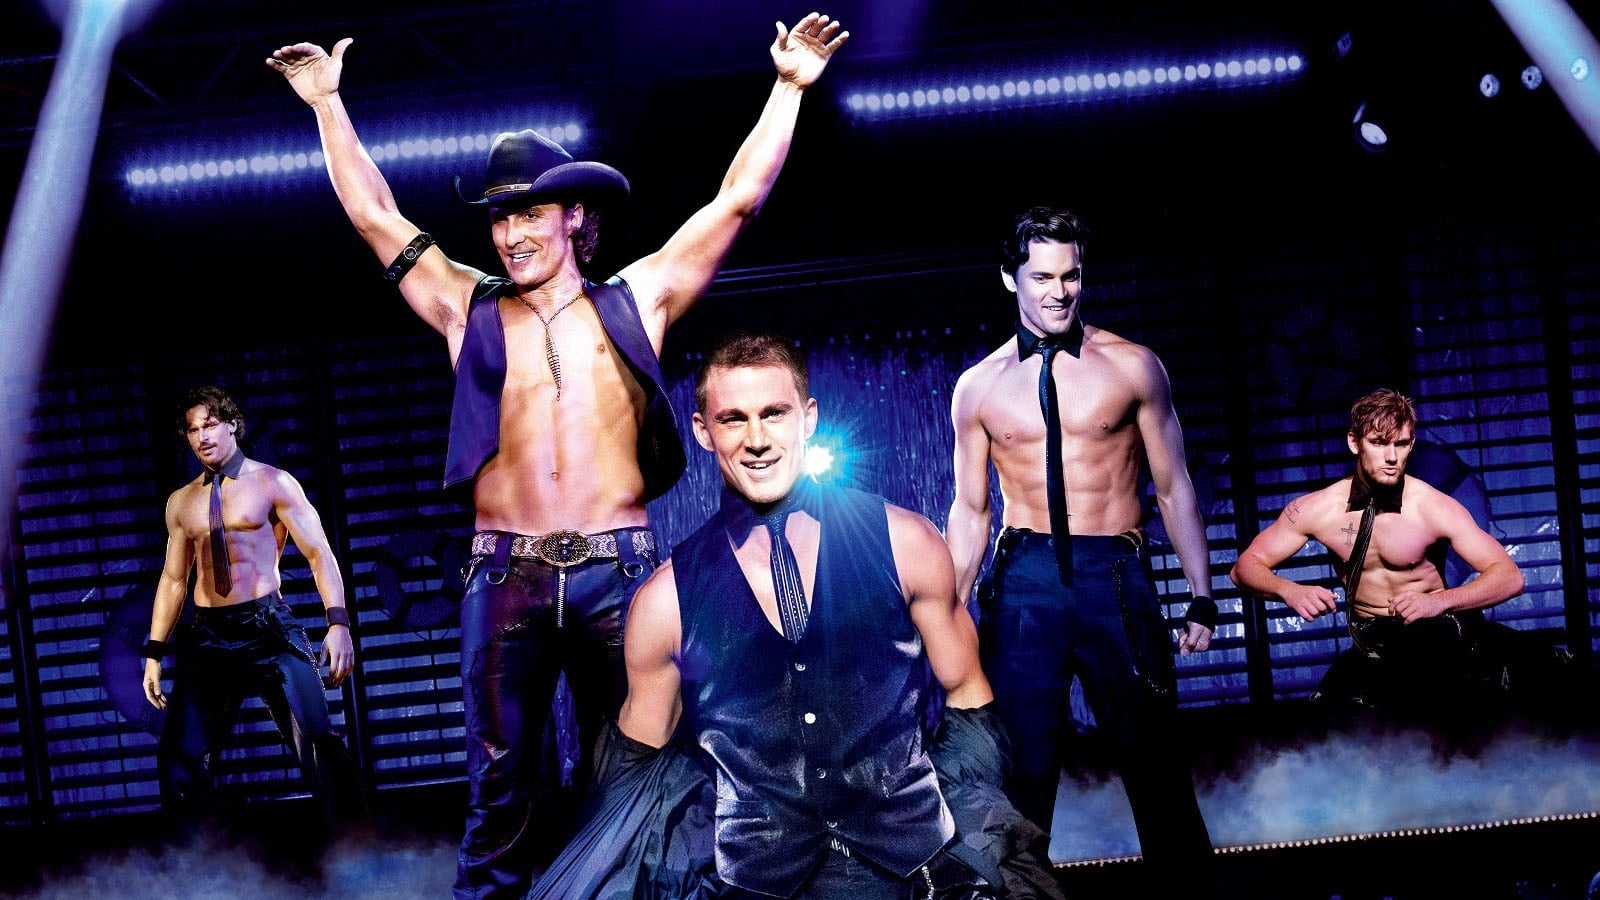 watch magic mike online free 123movies